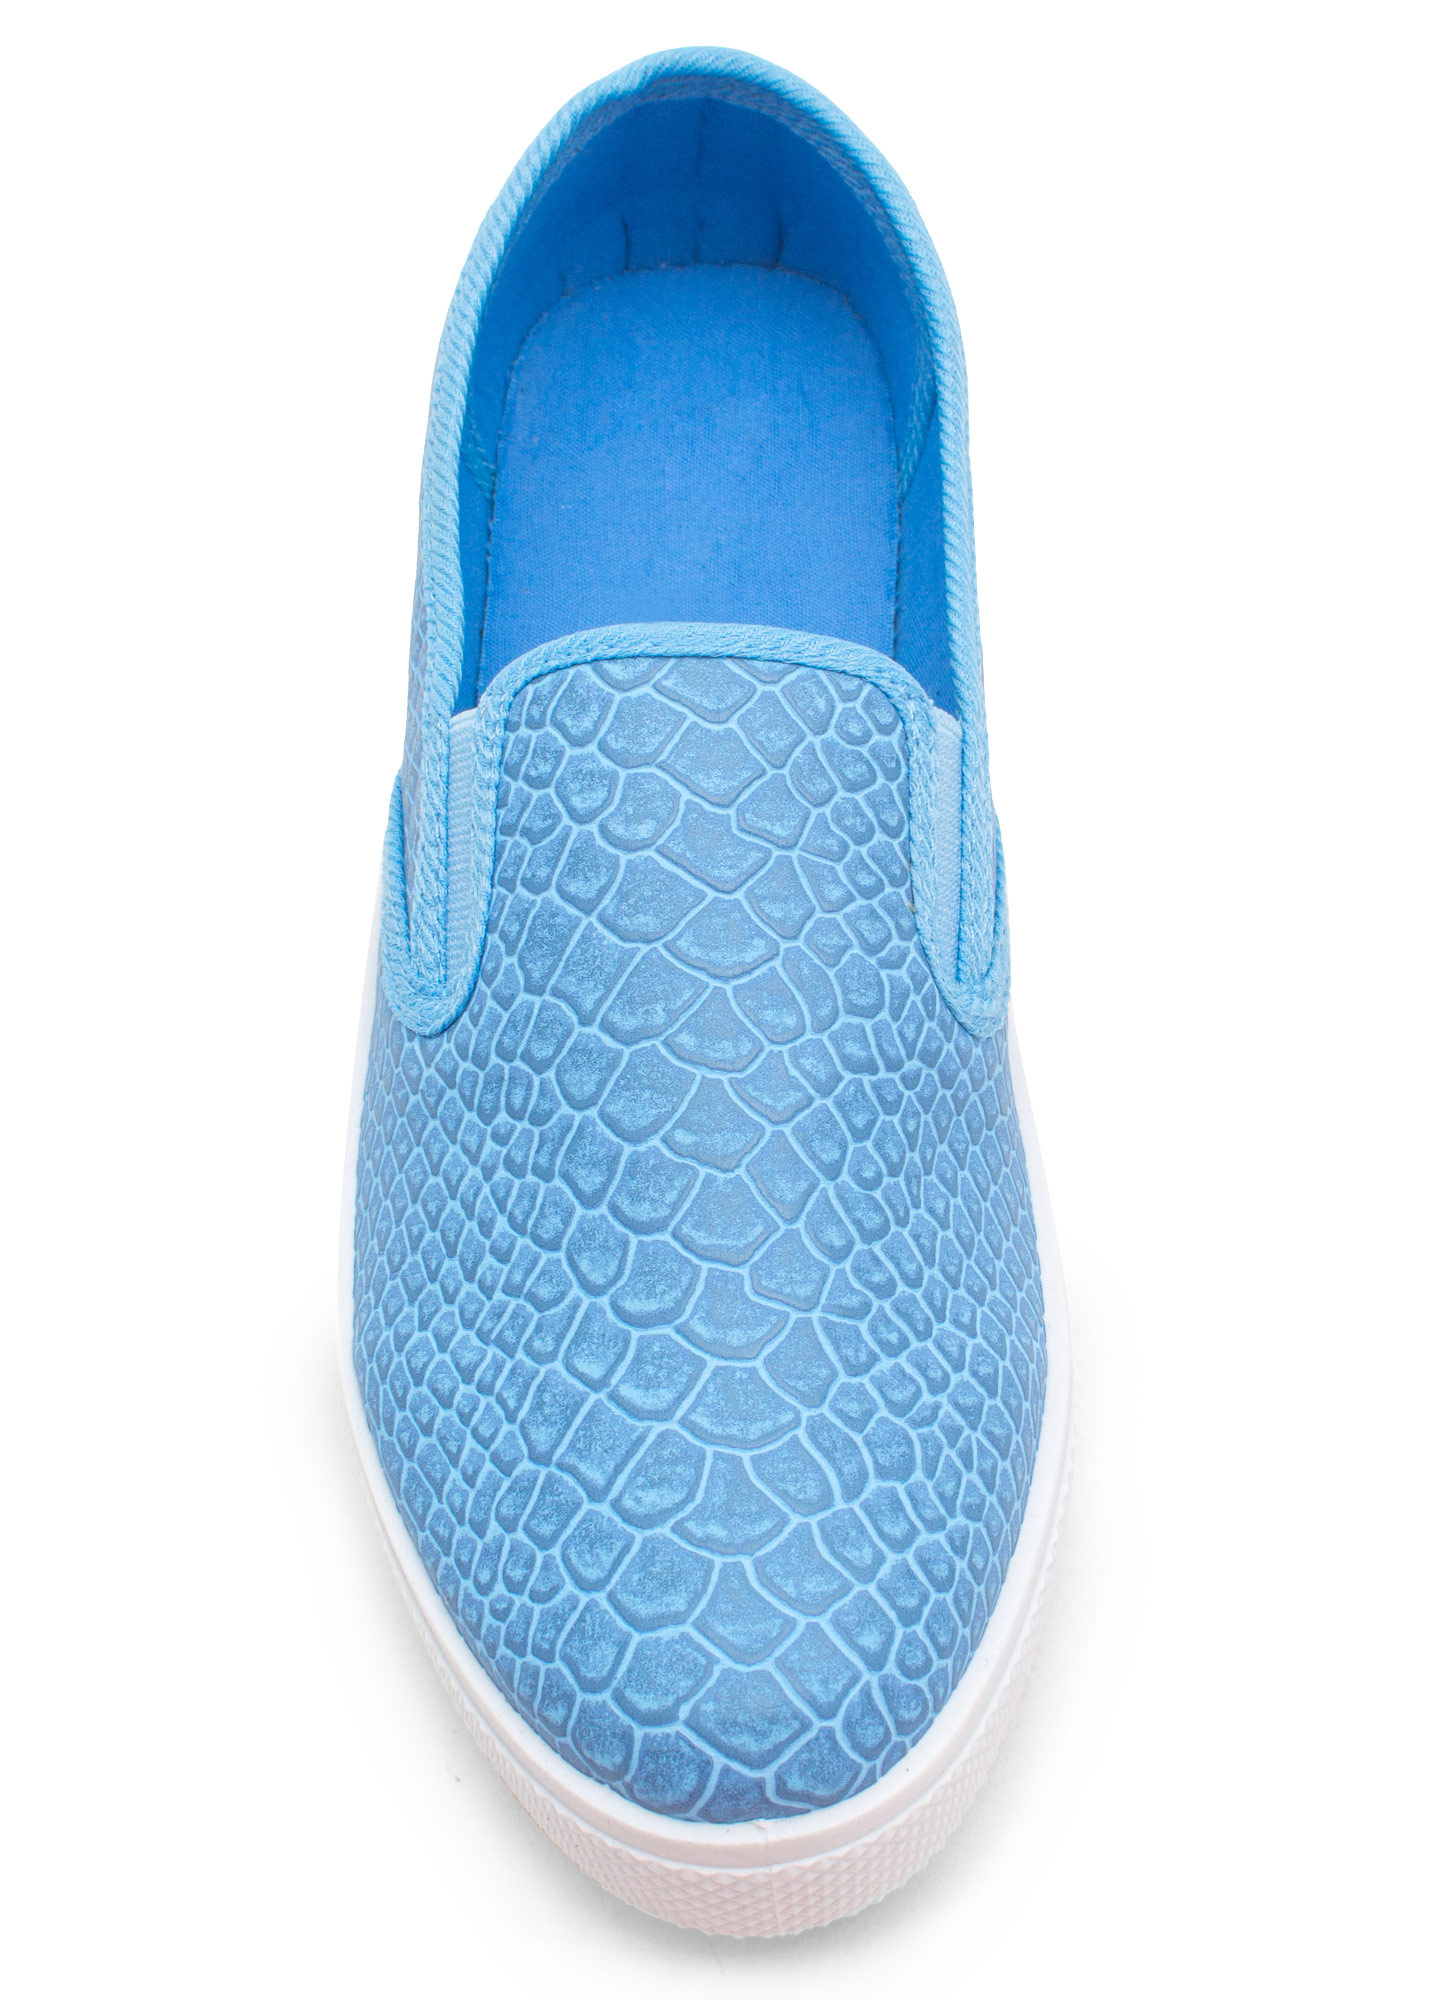 Come Slither Scaled Slip-On Sneakers BLUE